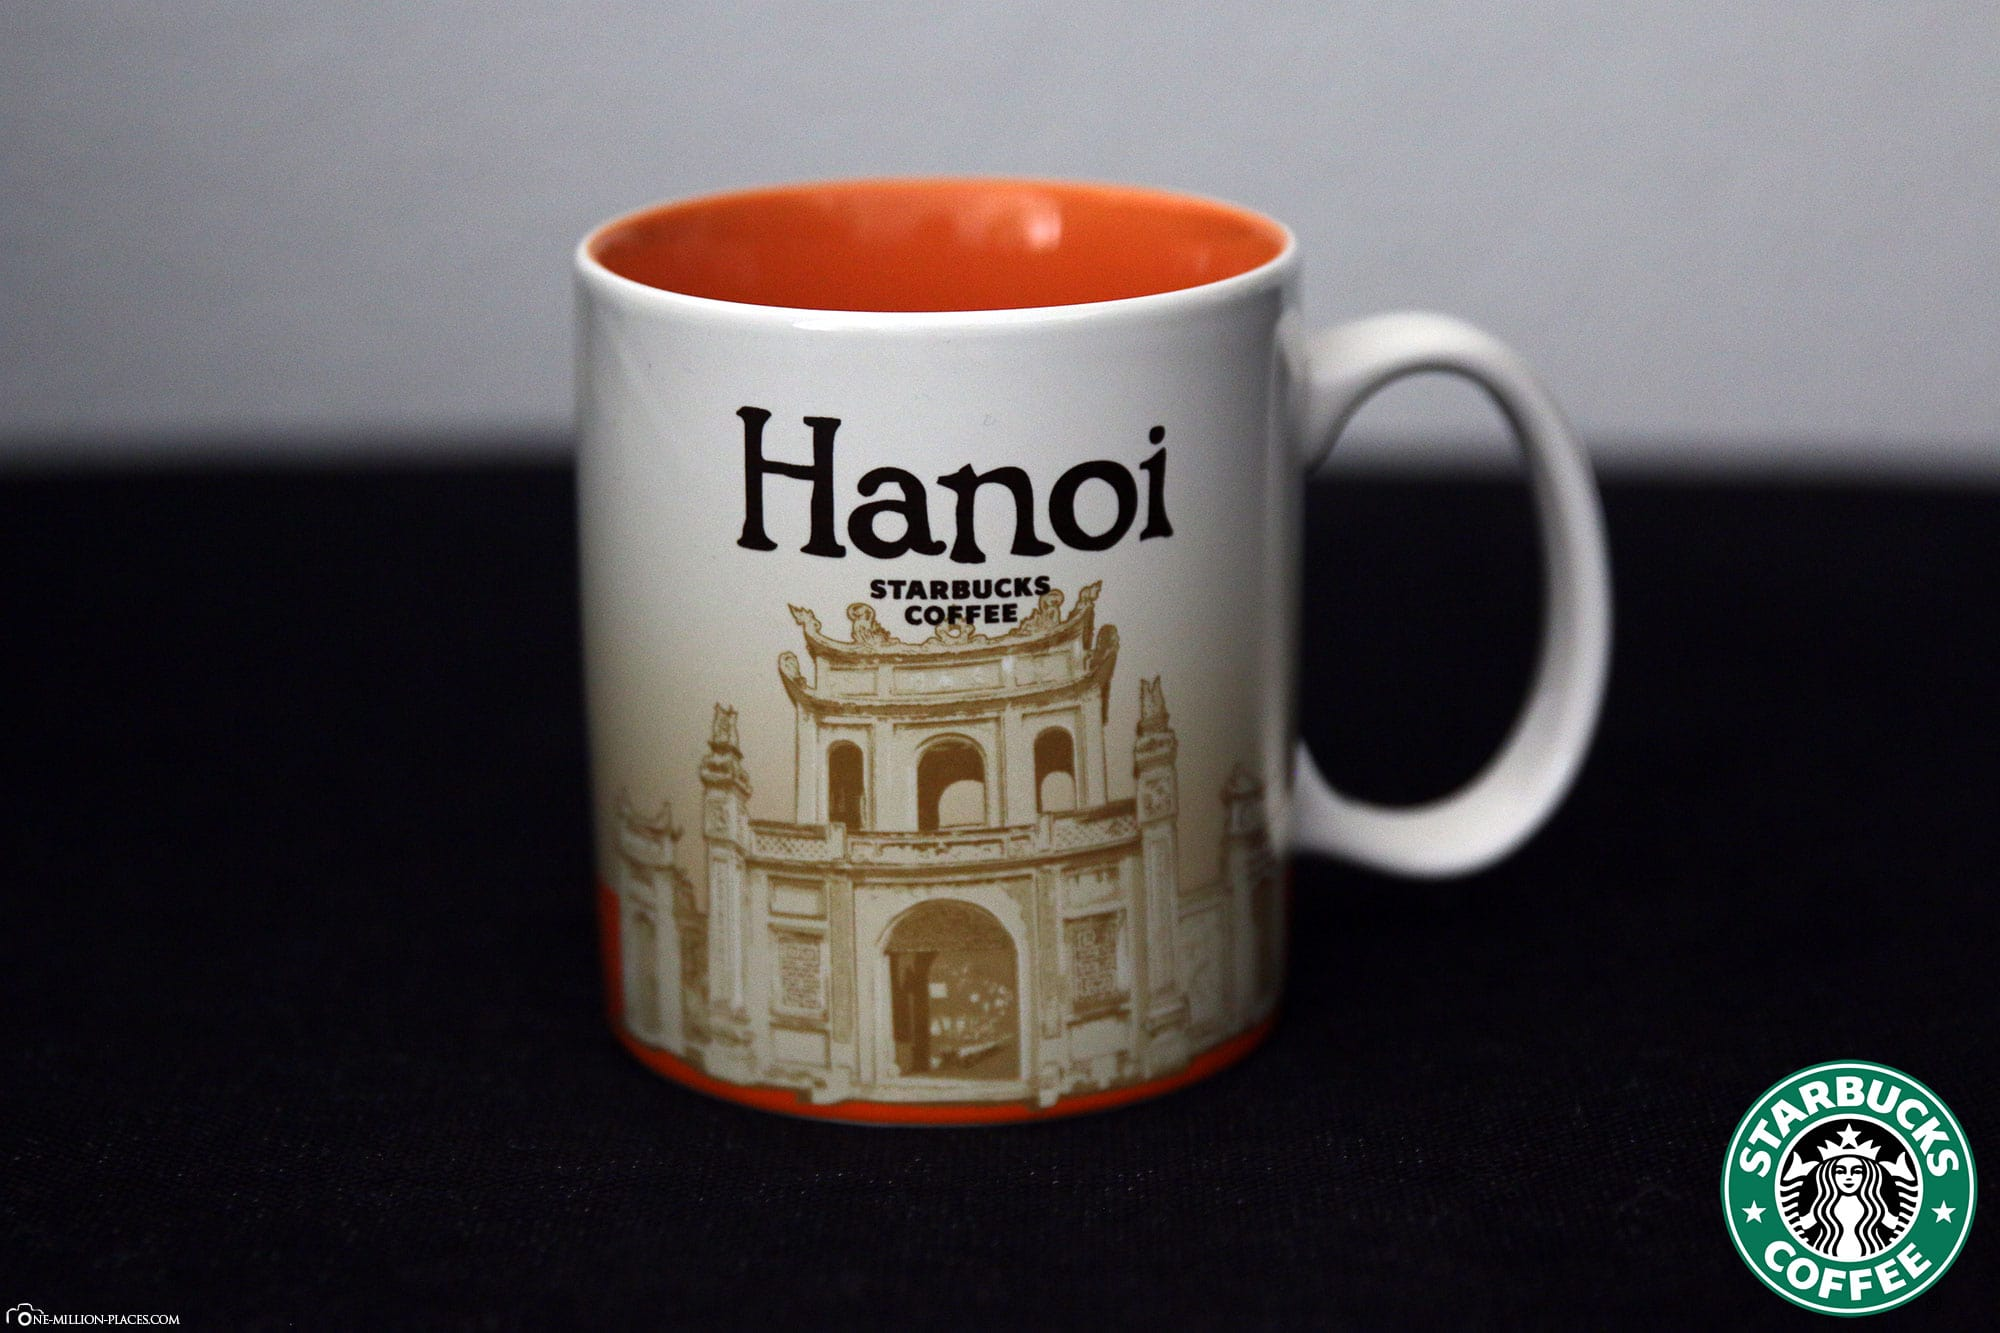 Hanoi, Starbucks Cup, Global Icon Series, City Mugs, Collection, Vietnam, Travelreport